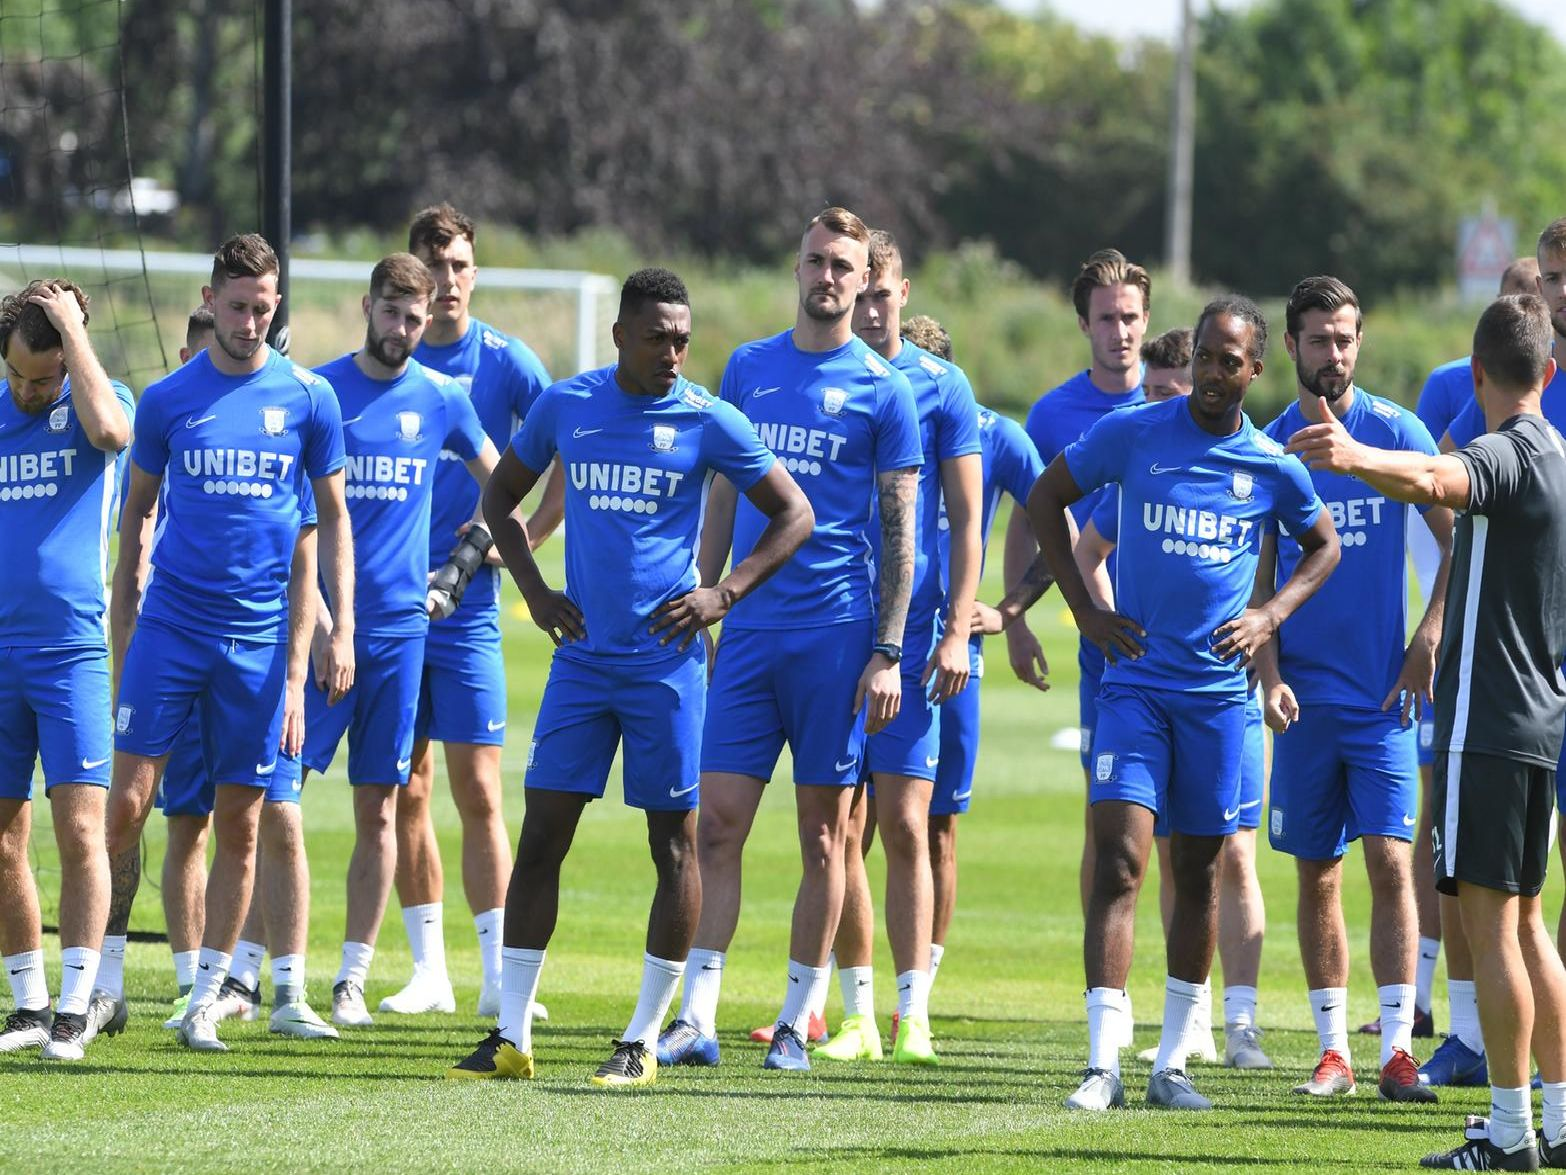 The PNE squad are back in pre-season training. Here are a collection of photos from the second day at Springfields.